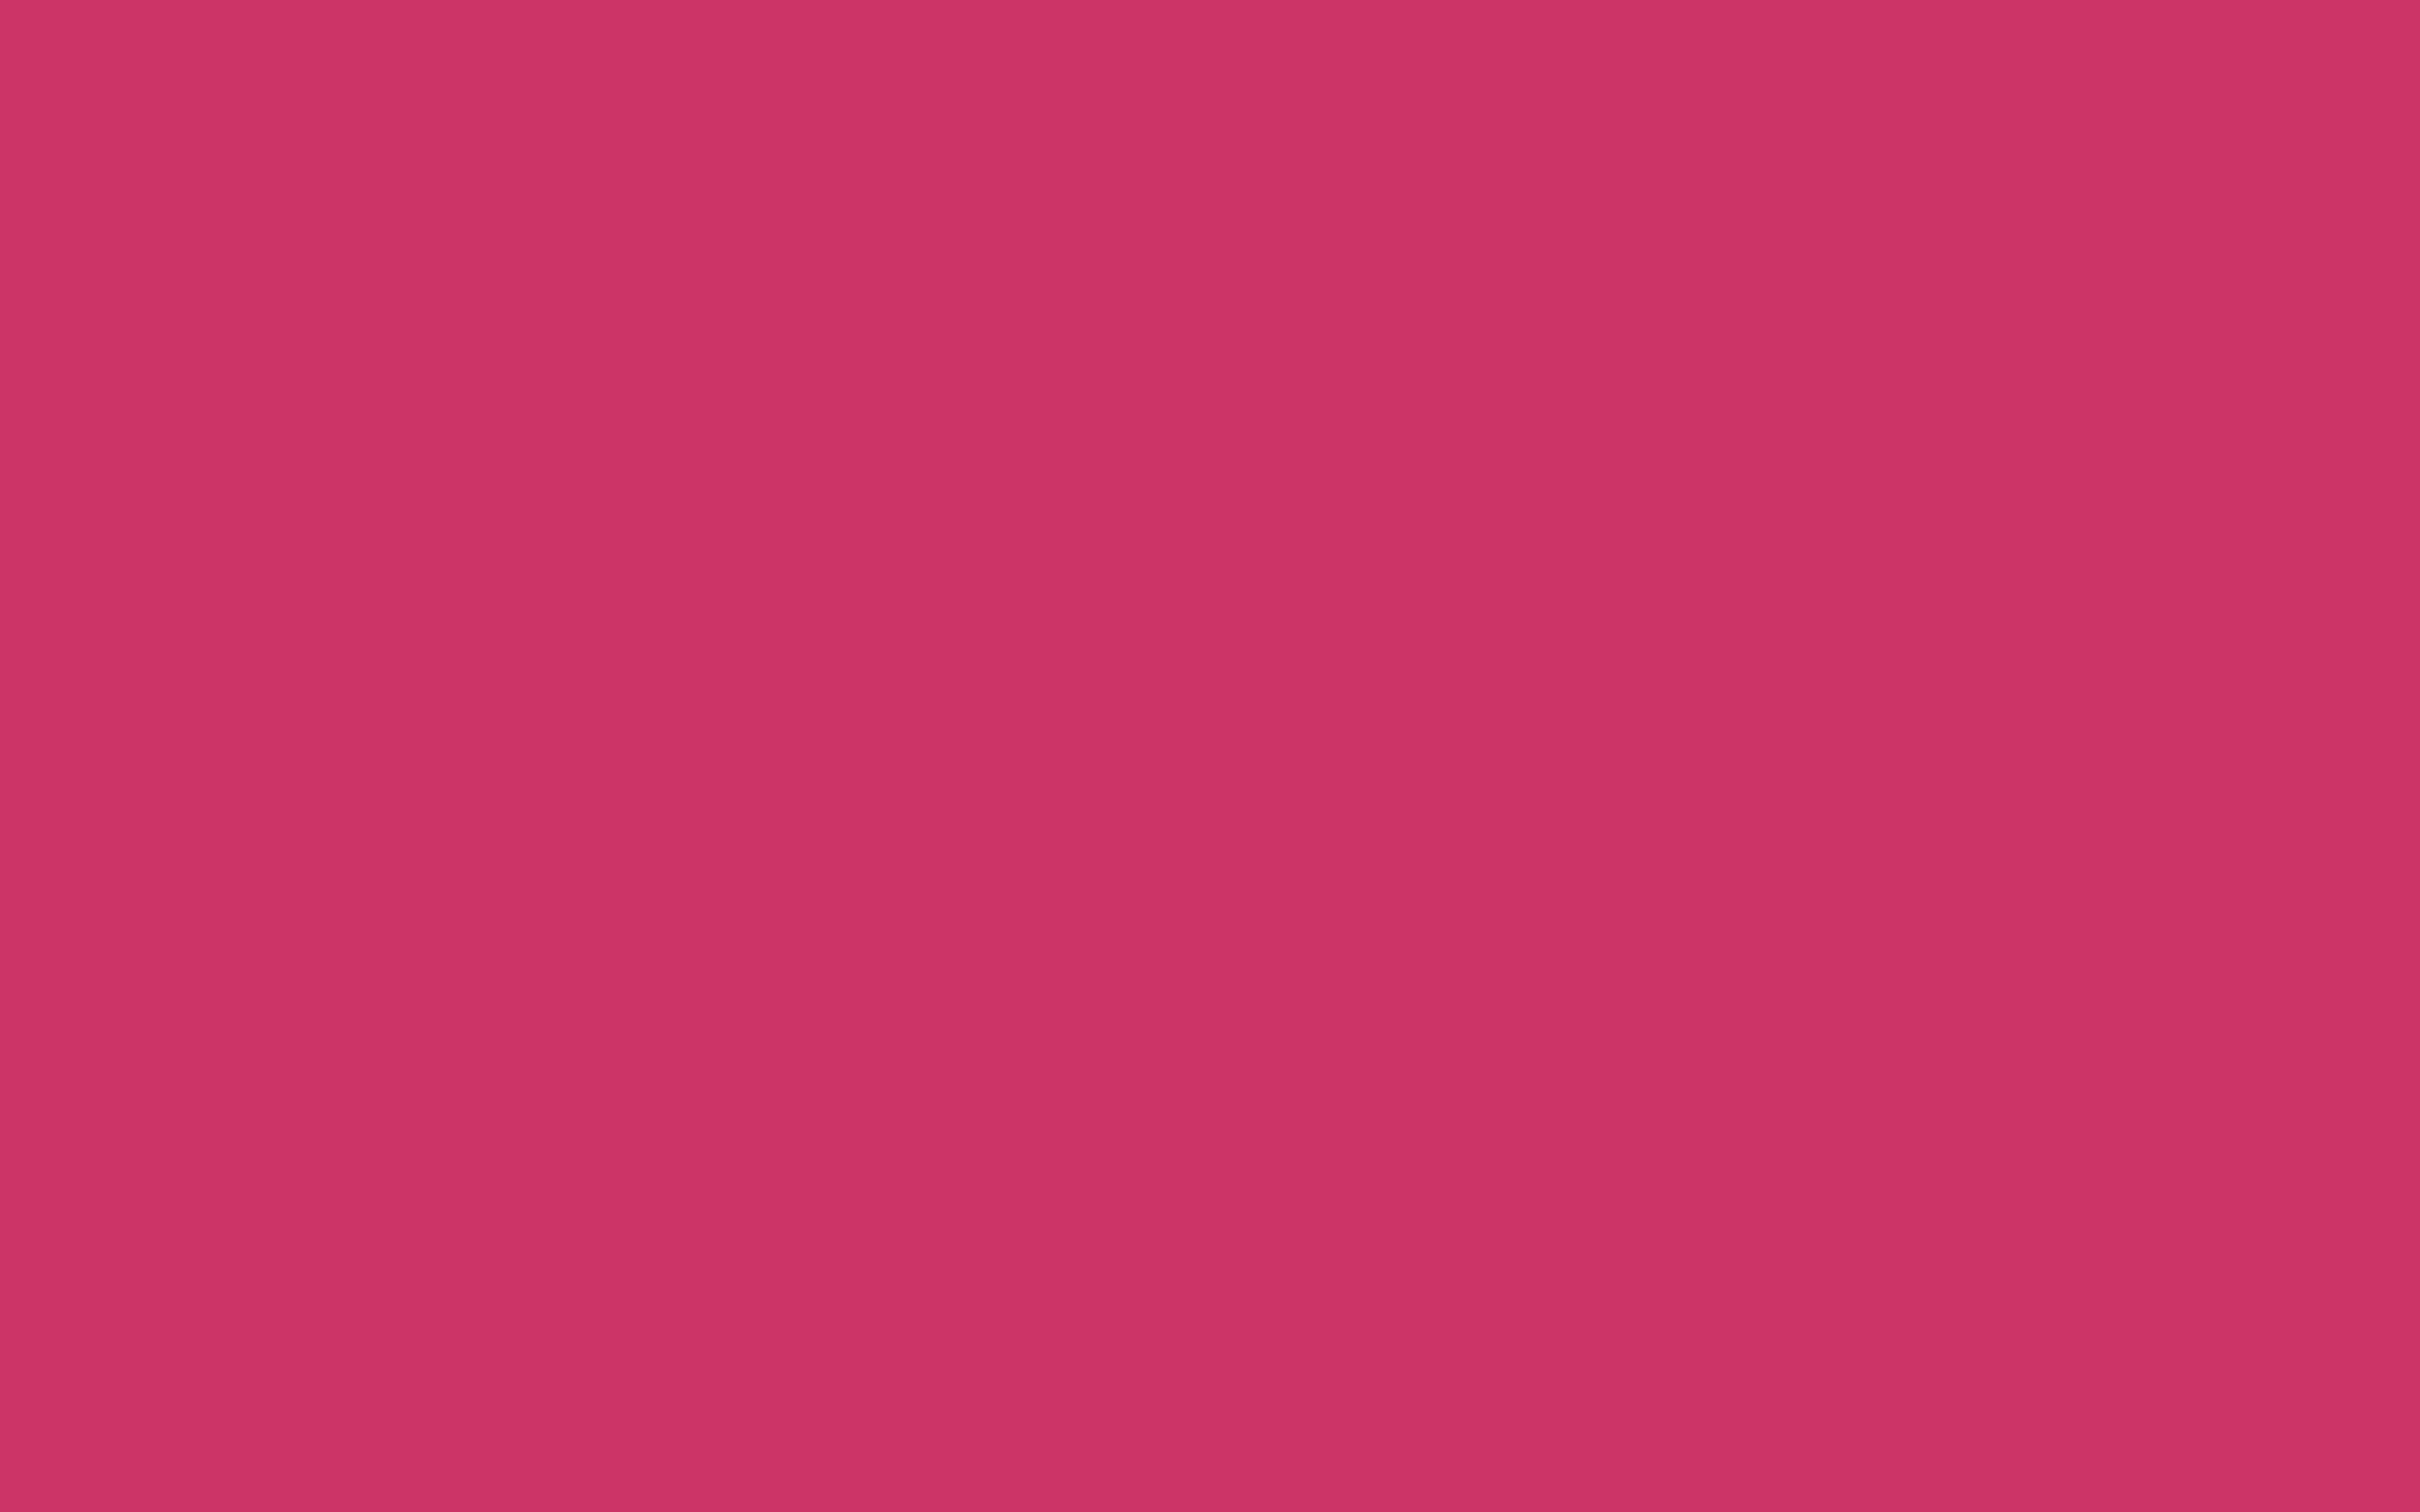 2880x1800 Steel Pink Solid Color Background